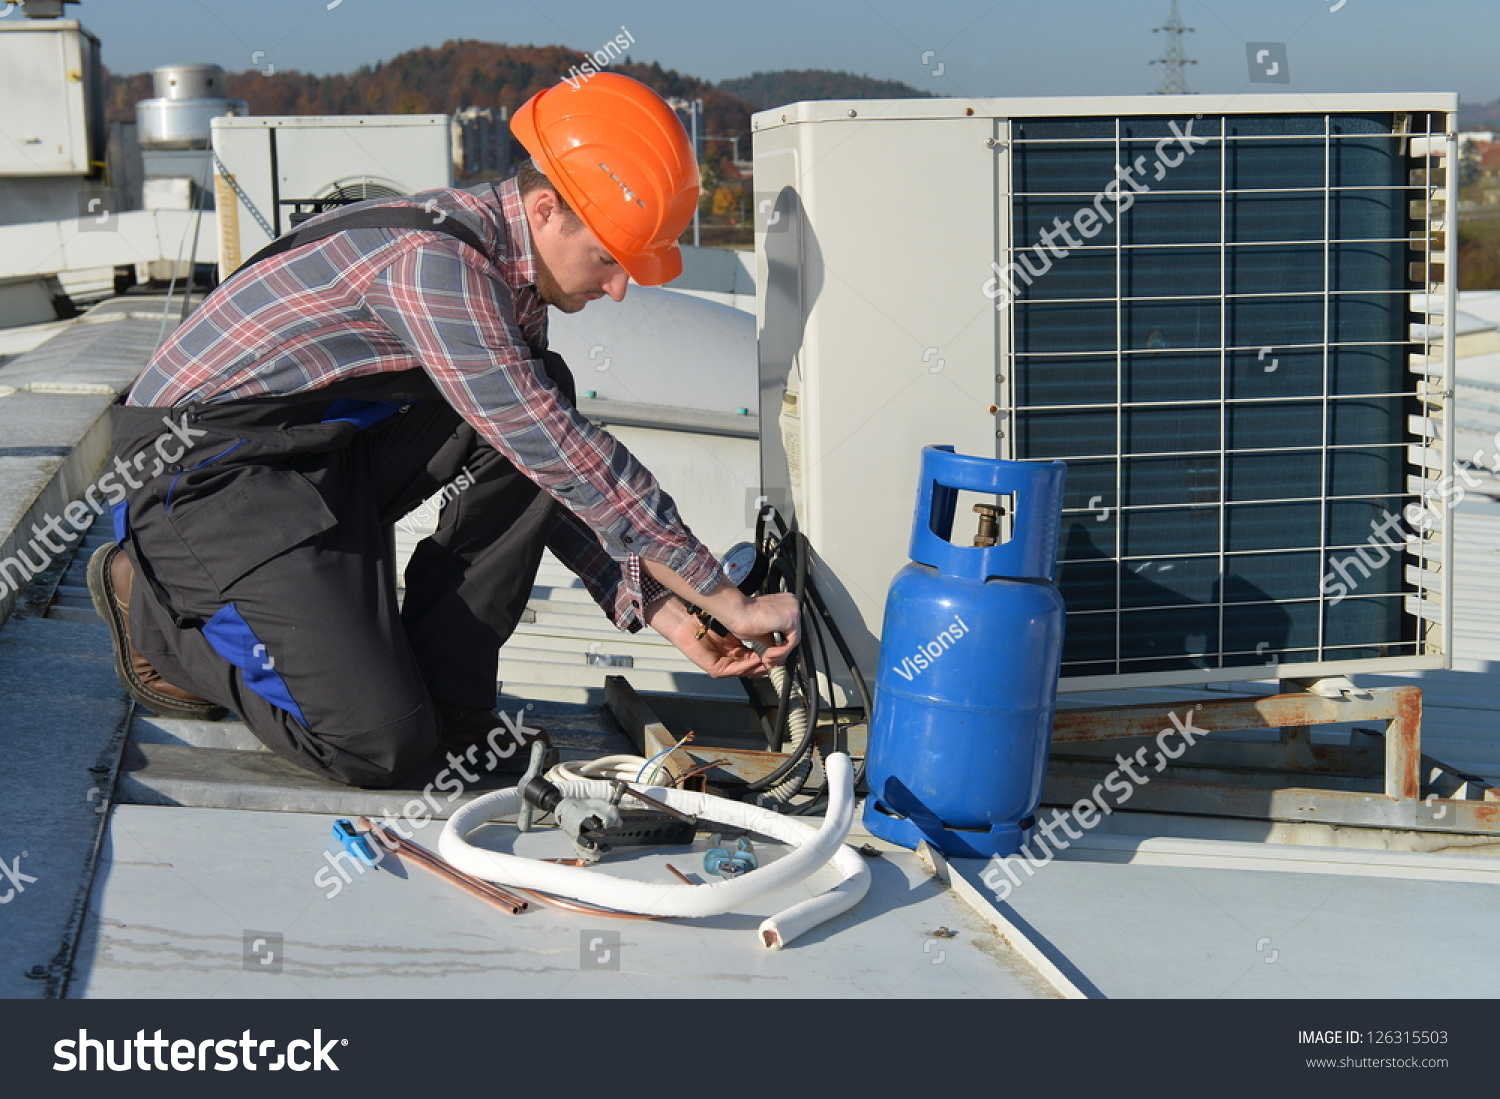 Air Conditioning Repair Young Repairman On The Roof Fixing Air Conditioning System Model Is